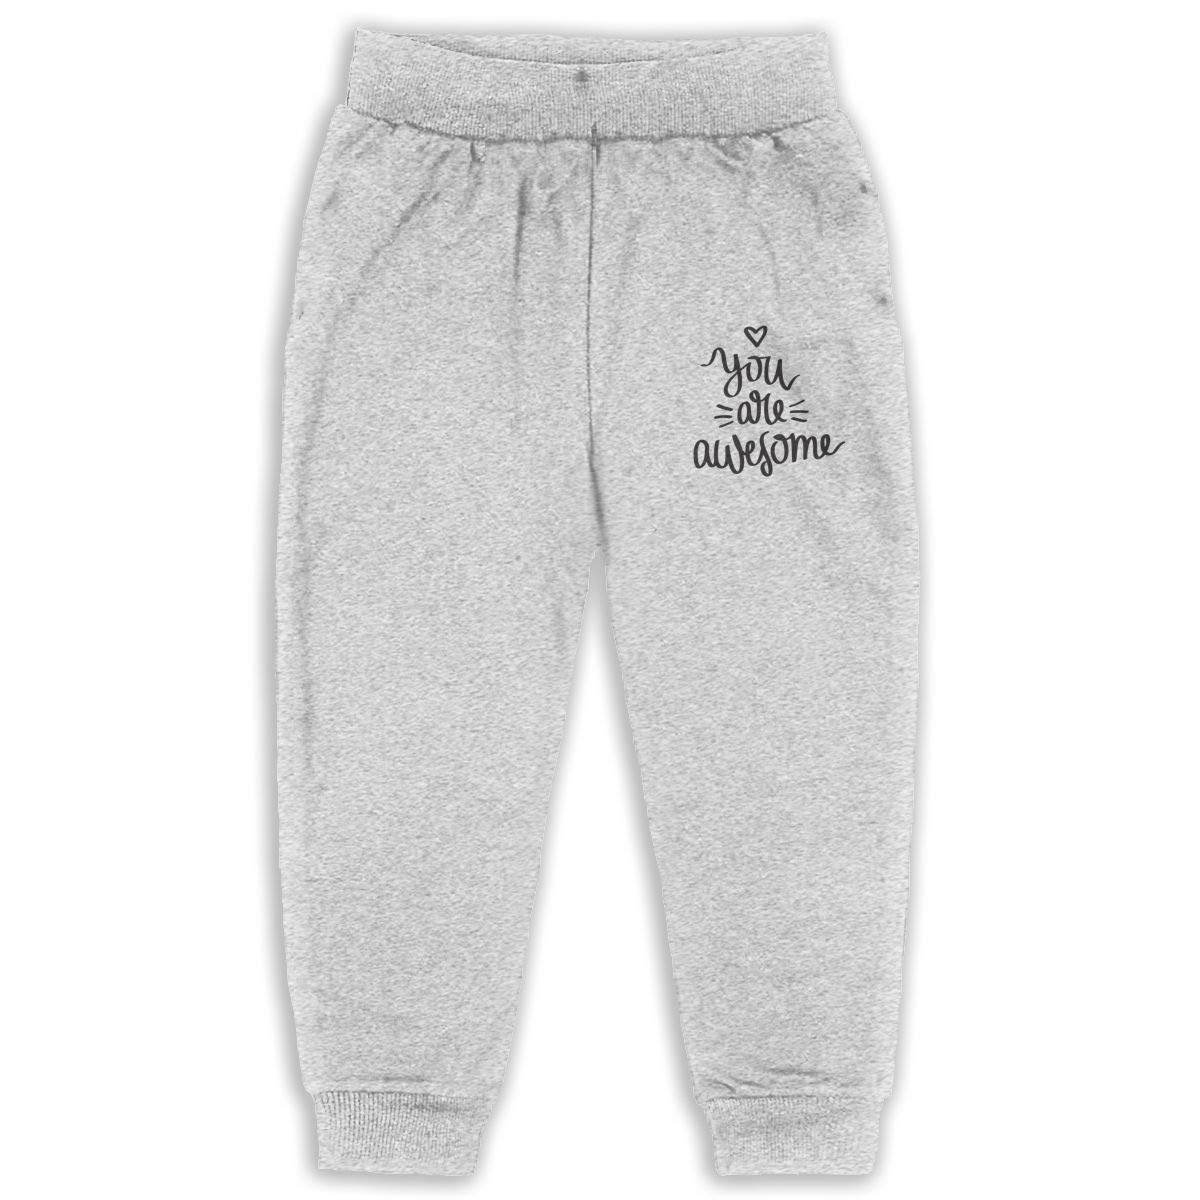 Fleece Active Joggers Elastic Pants You are Awesome Sweatpants for Boys /& Girls